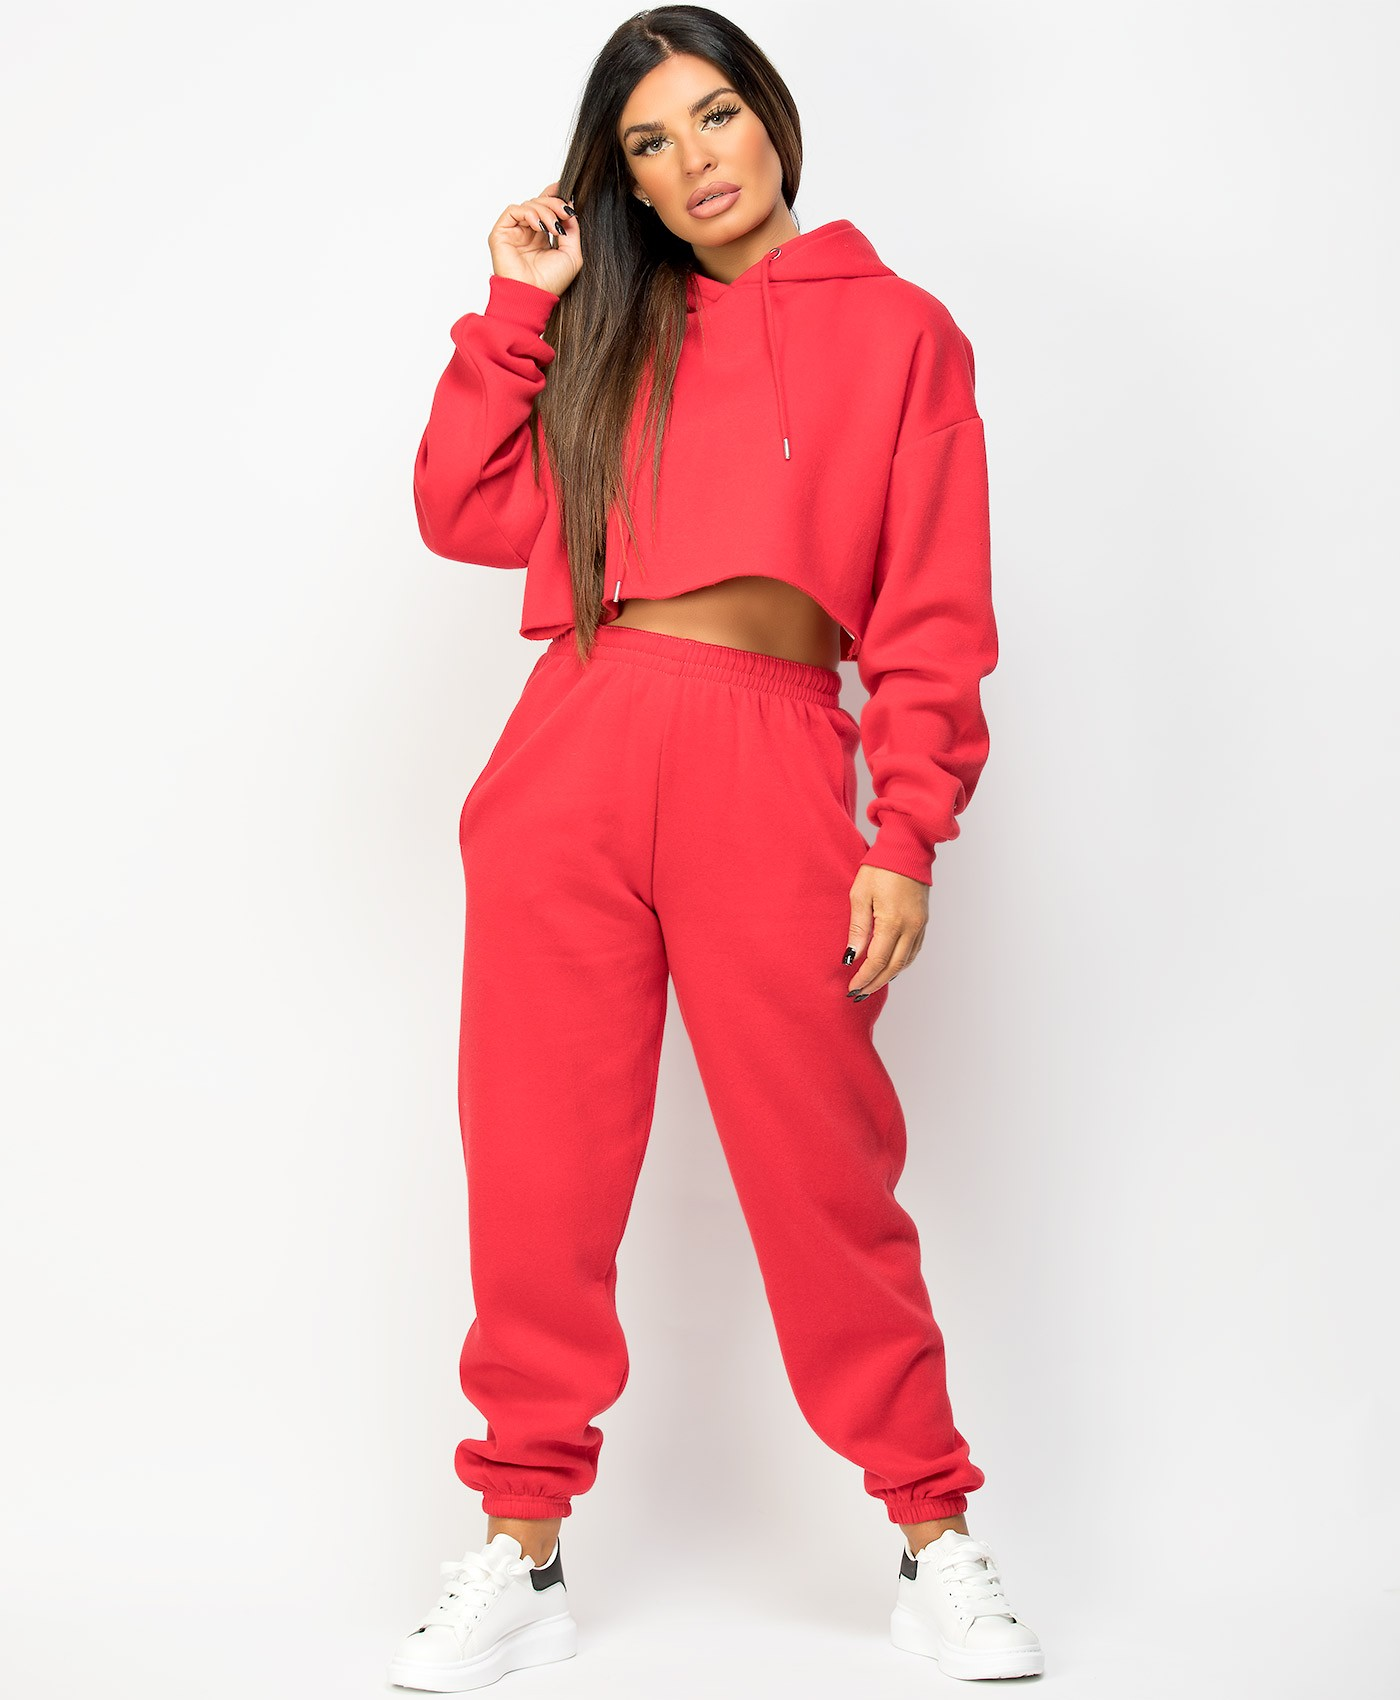 Red-Oversized-Cropped-Hoody-&-Joggers-Loungewear-Set-1